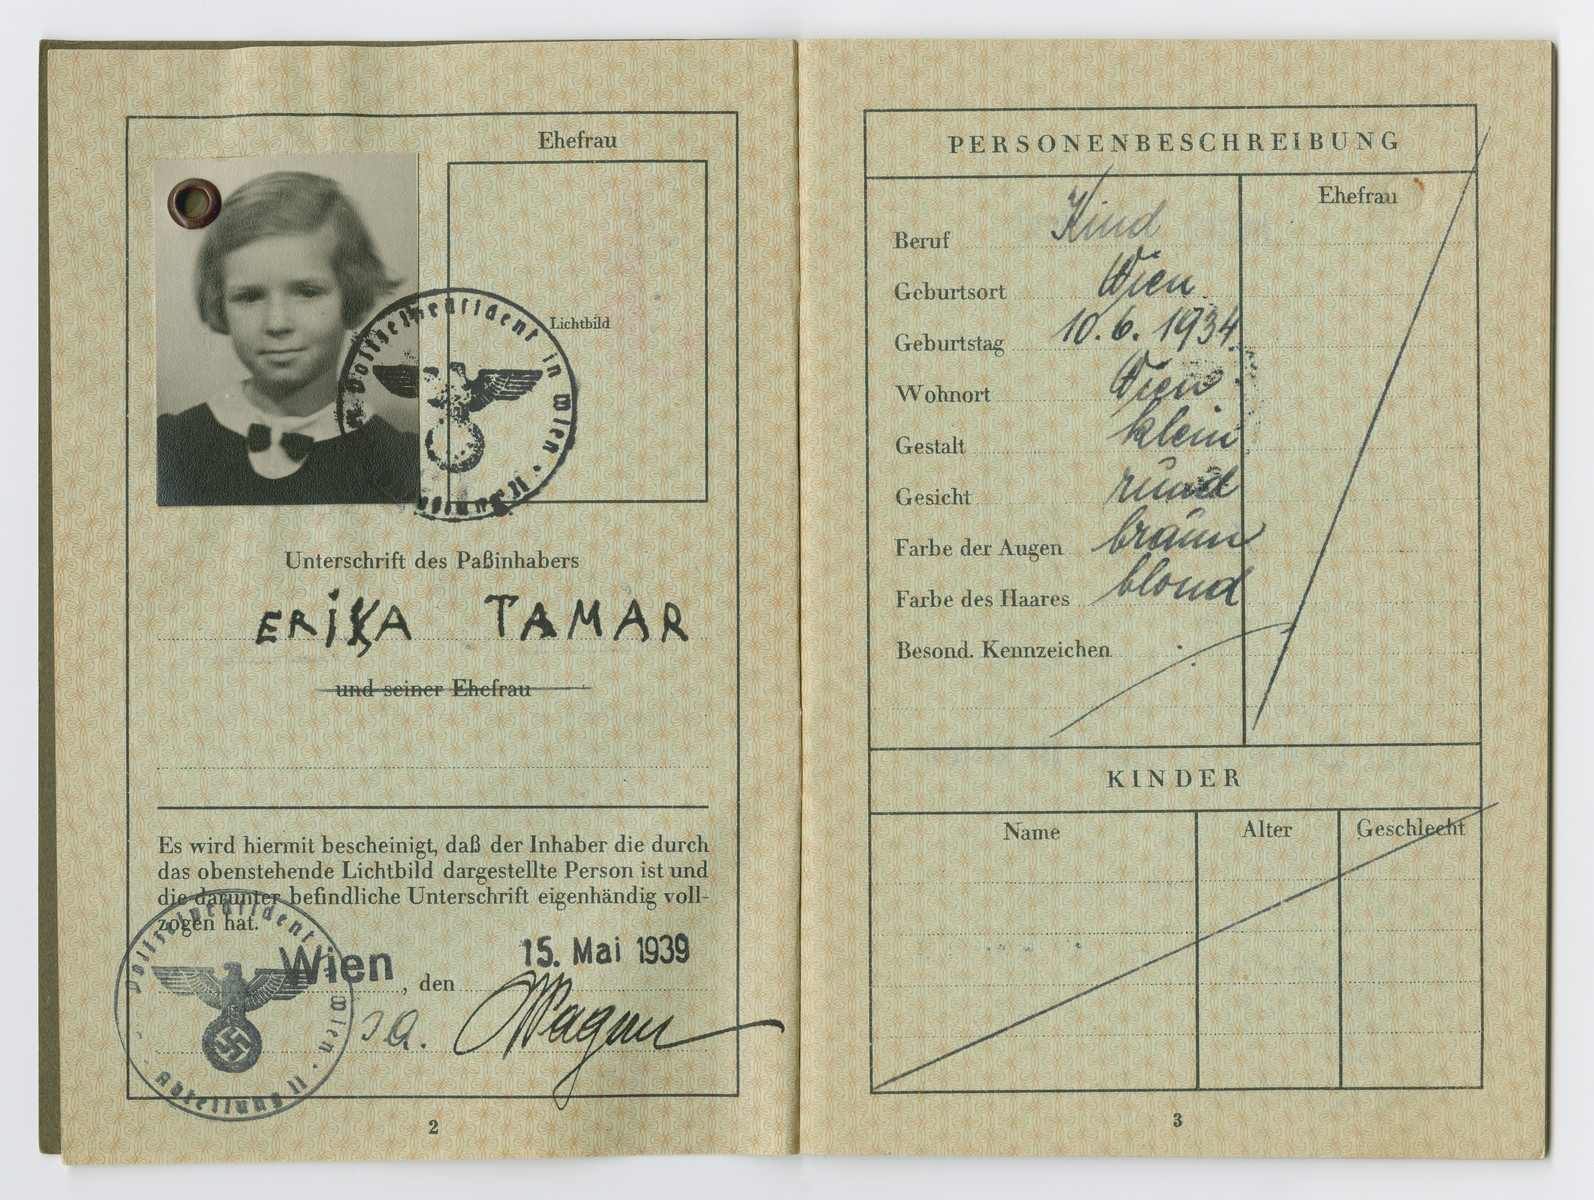 Identification papers issued to Erika Tamar stating she was born in Vienna on June 10, 1934.